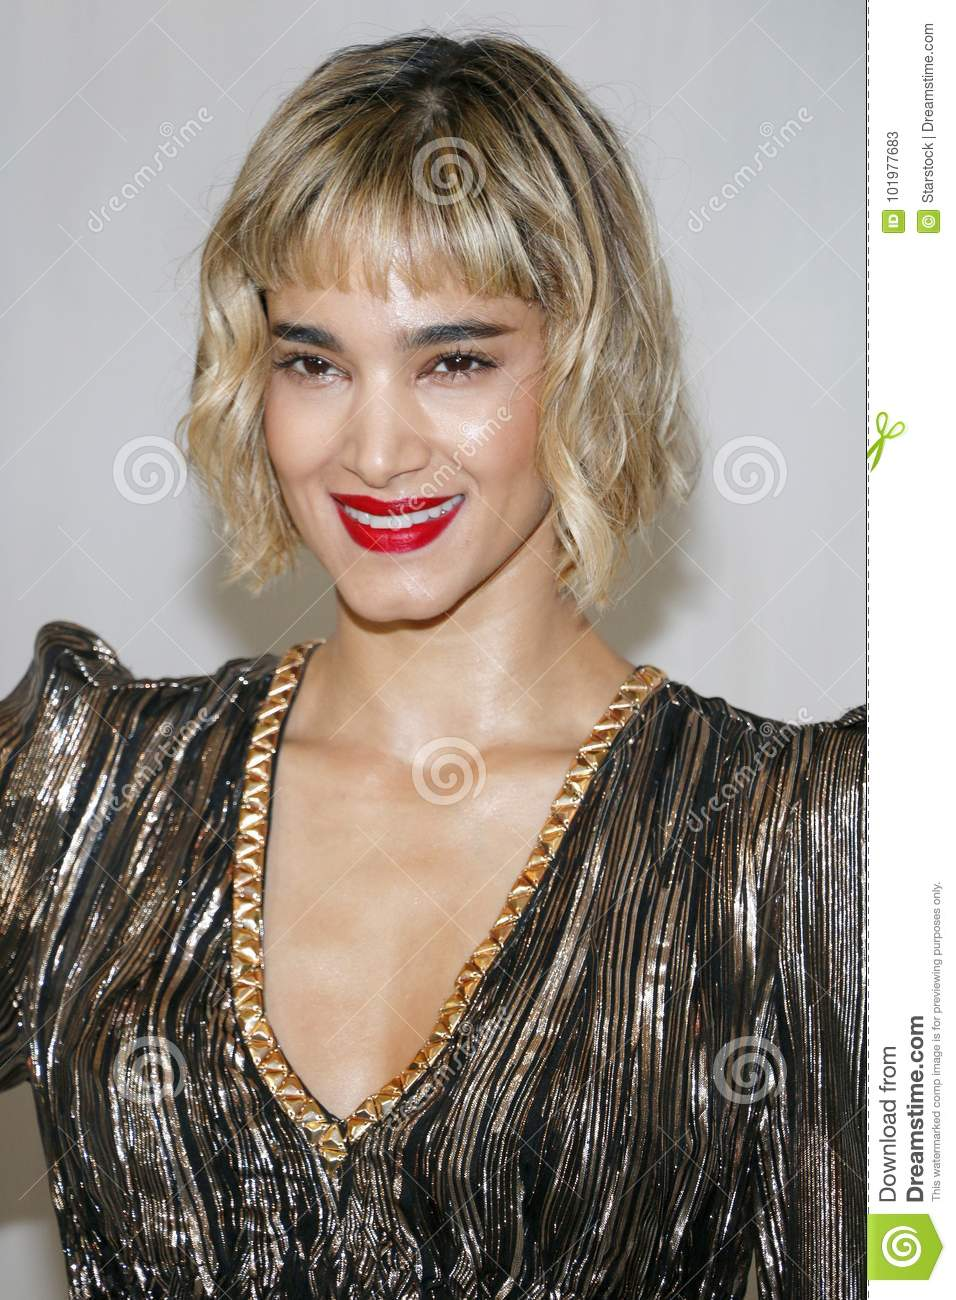 sofia boutella celebzzsofia boutella dance, sofia boutella instagram, sofia boutella nike, sofia boutella gif, sofia boutella kingsman, sofia boutella atomic blonde, sofia boutella fansite, sofia boutella michael jackson, sofia boutella news, sofia boutella celebzz, sofia boutella listal, sofia boutella vk, sofia boutella twitter, sofia boutella wiki, sofia boutella keean johnson, sofia boutella god control, sofia boutella gif icons, sofia boutella photo, sofia boutella site, sofia boutella net worth